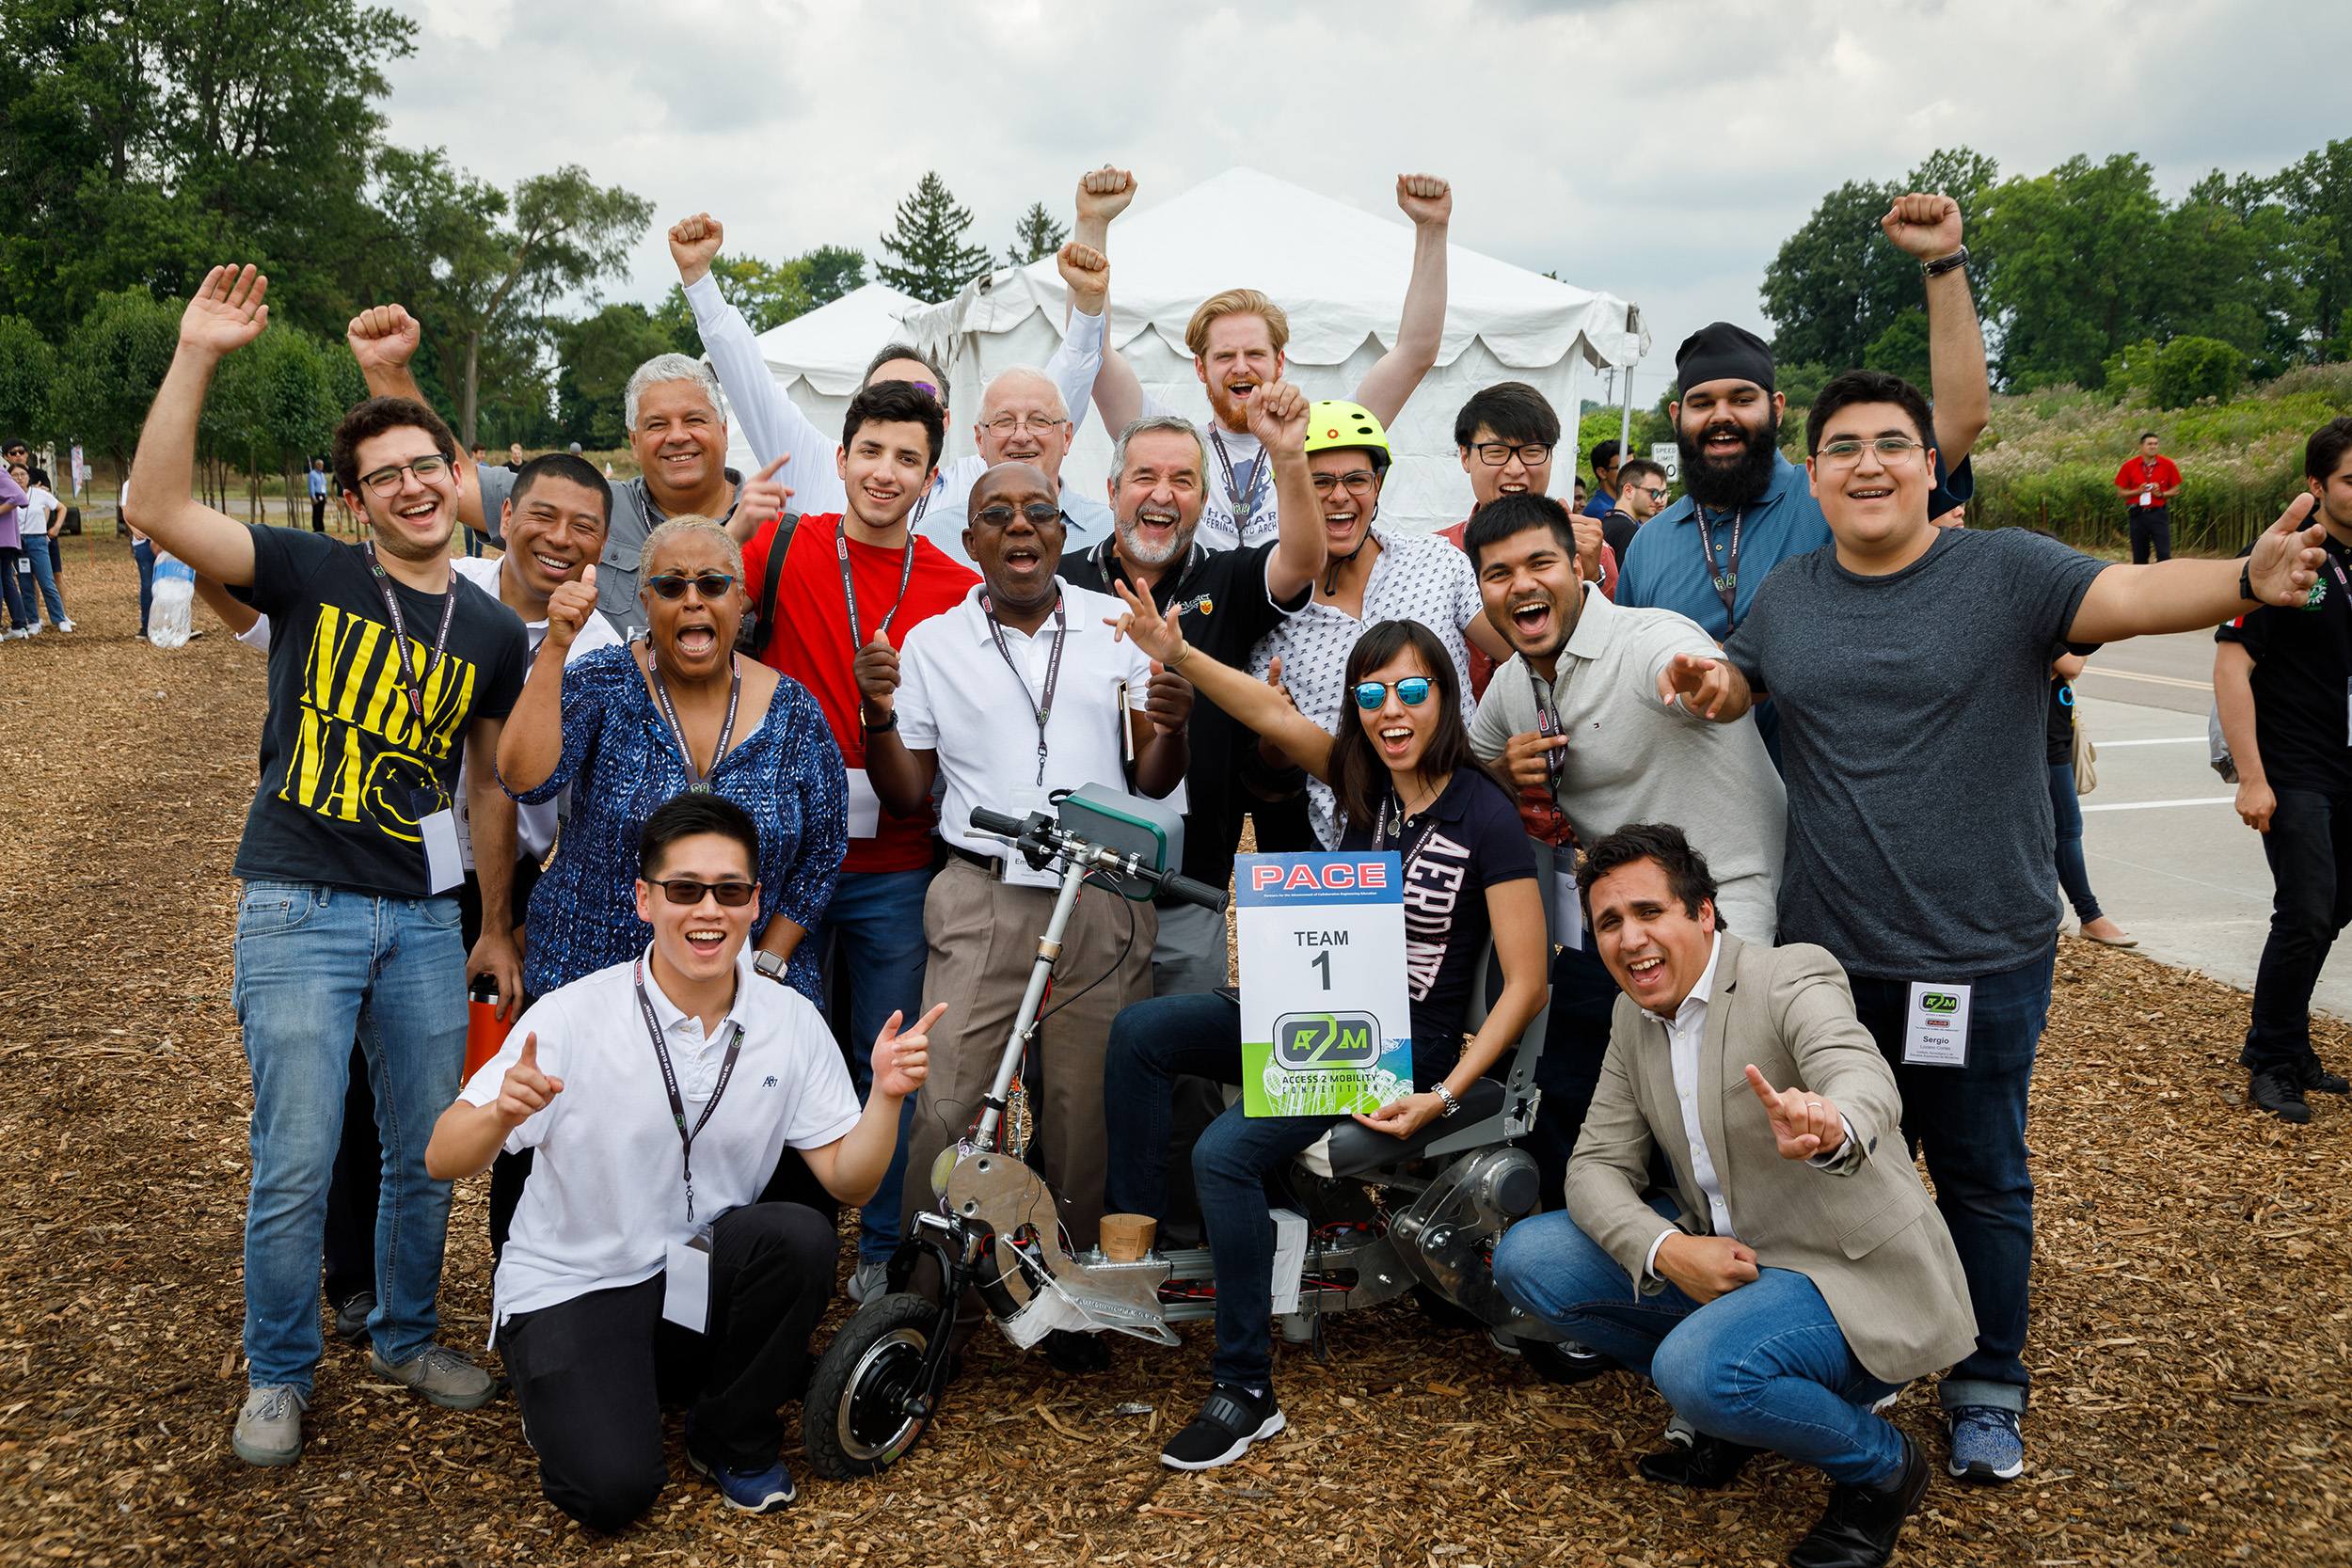 International student team wins prestigious automotive engineering design award